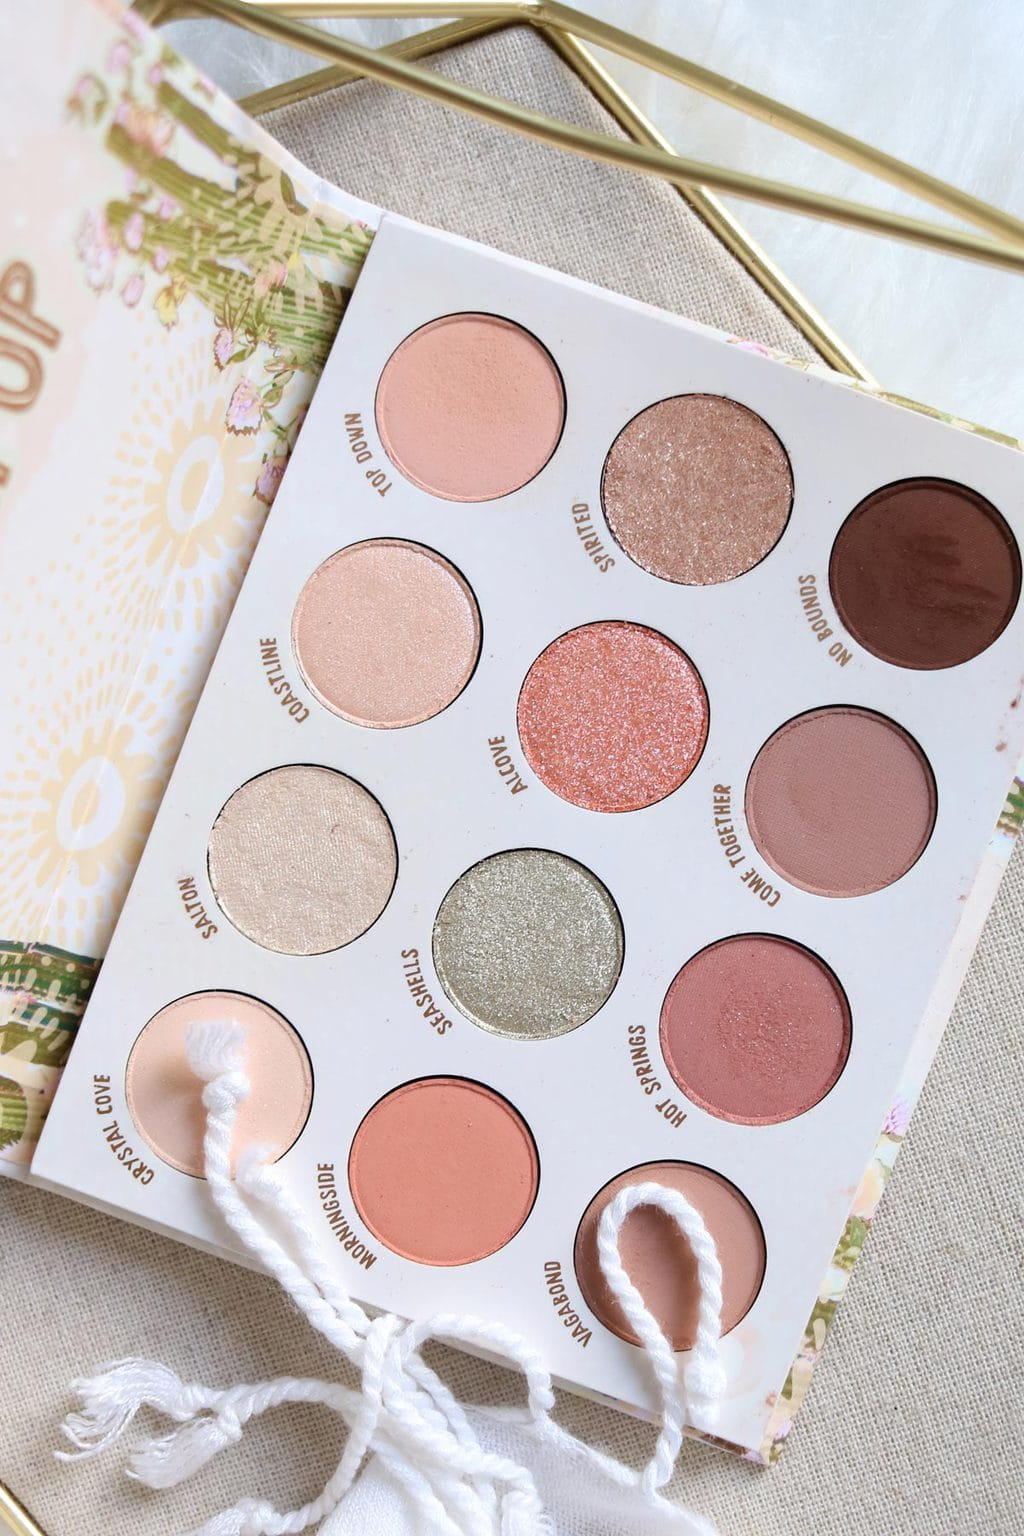 Colourpop Wild Nothing Palette Review and Swatches